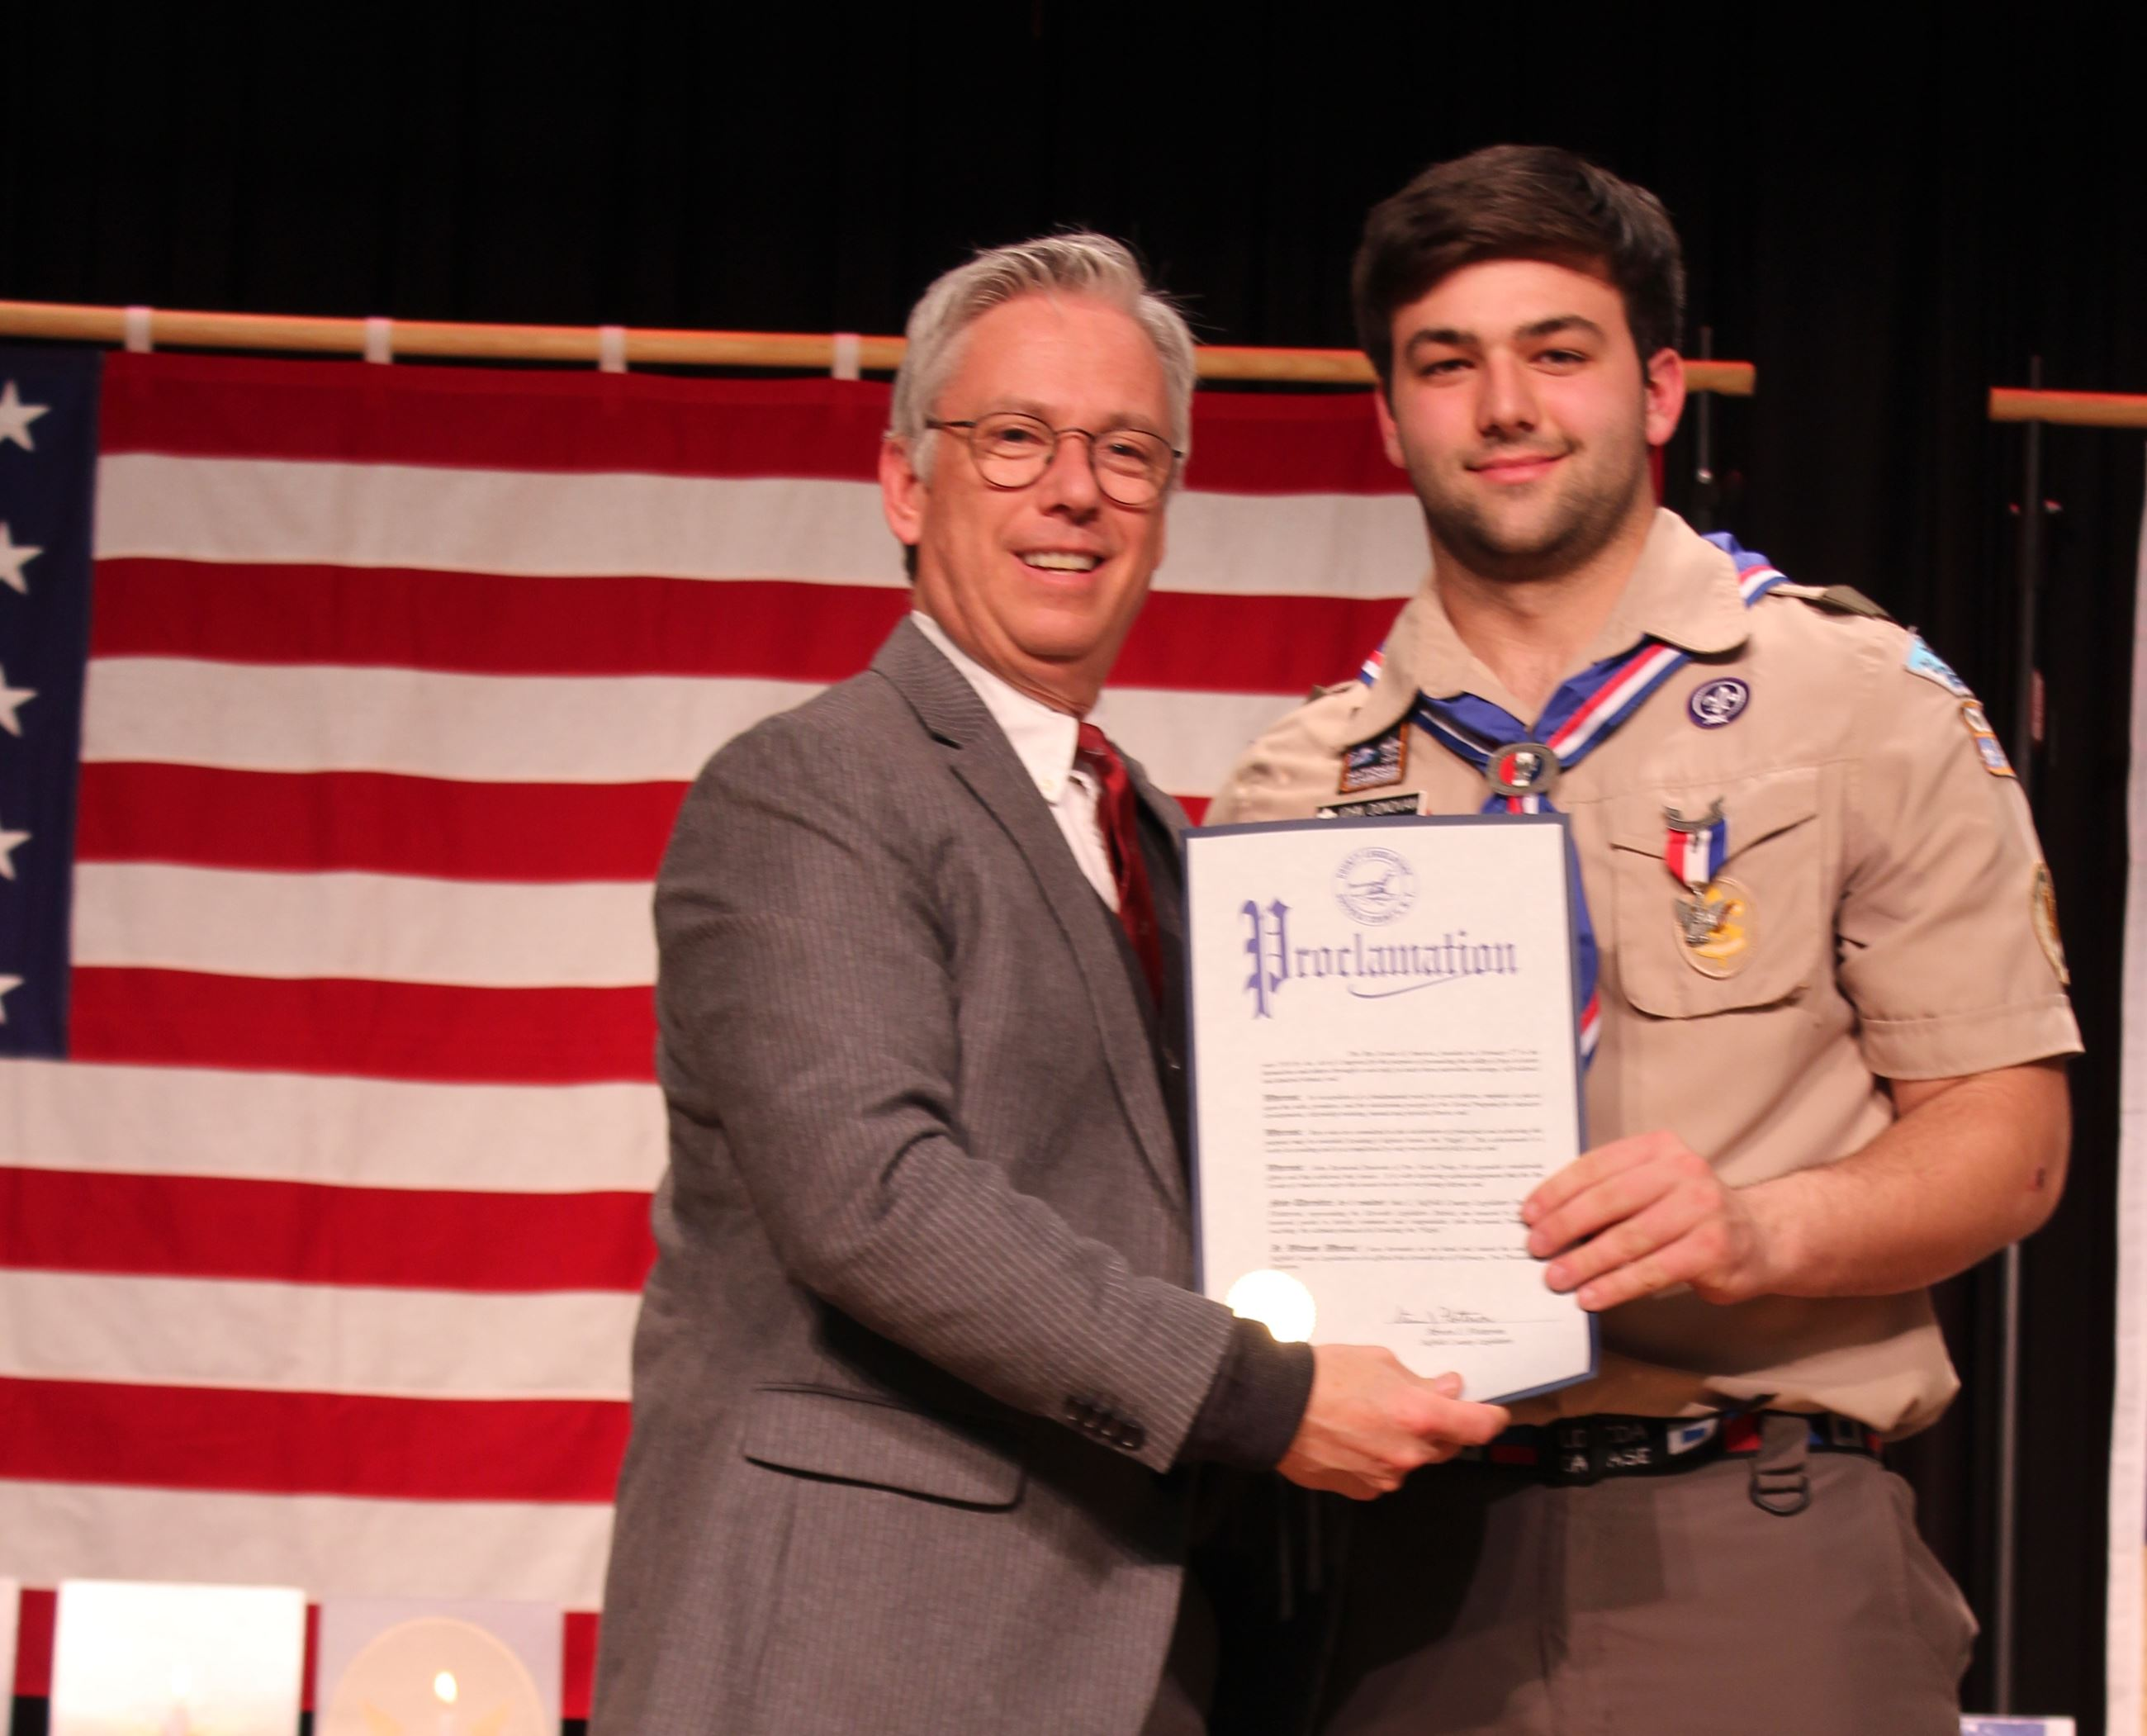 Eagle Scout Donovan.jpg edited